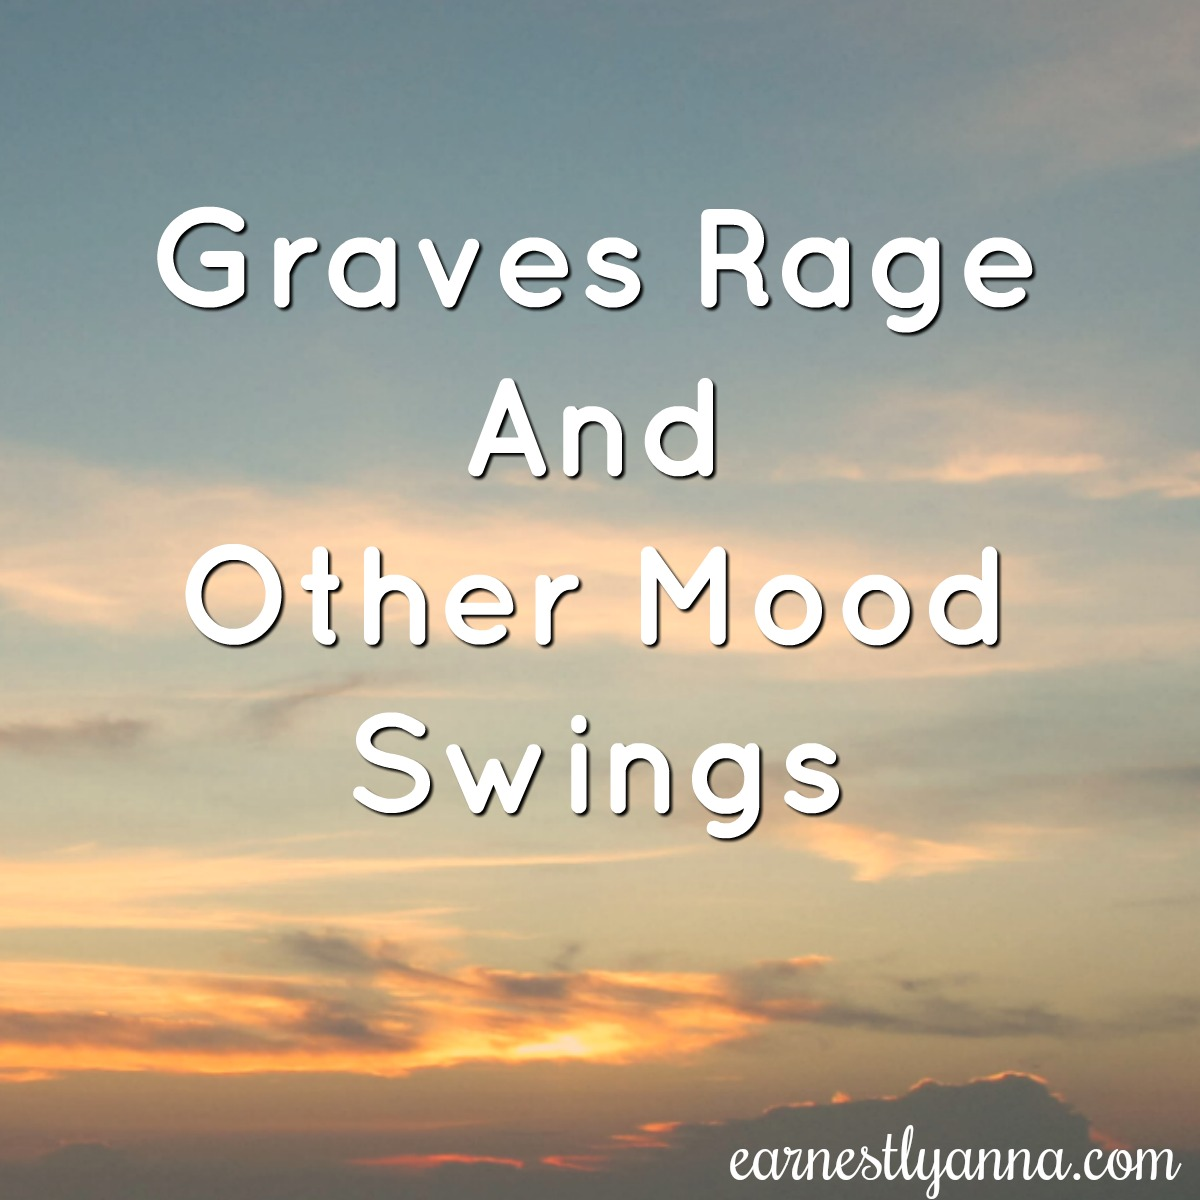 graves-rage-and-other-mood-swings